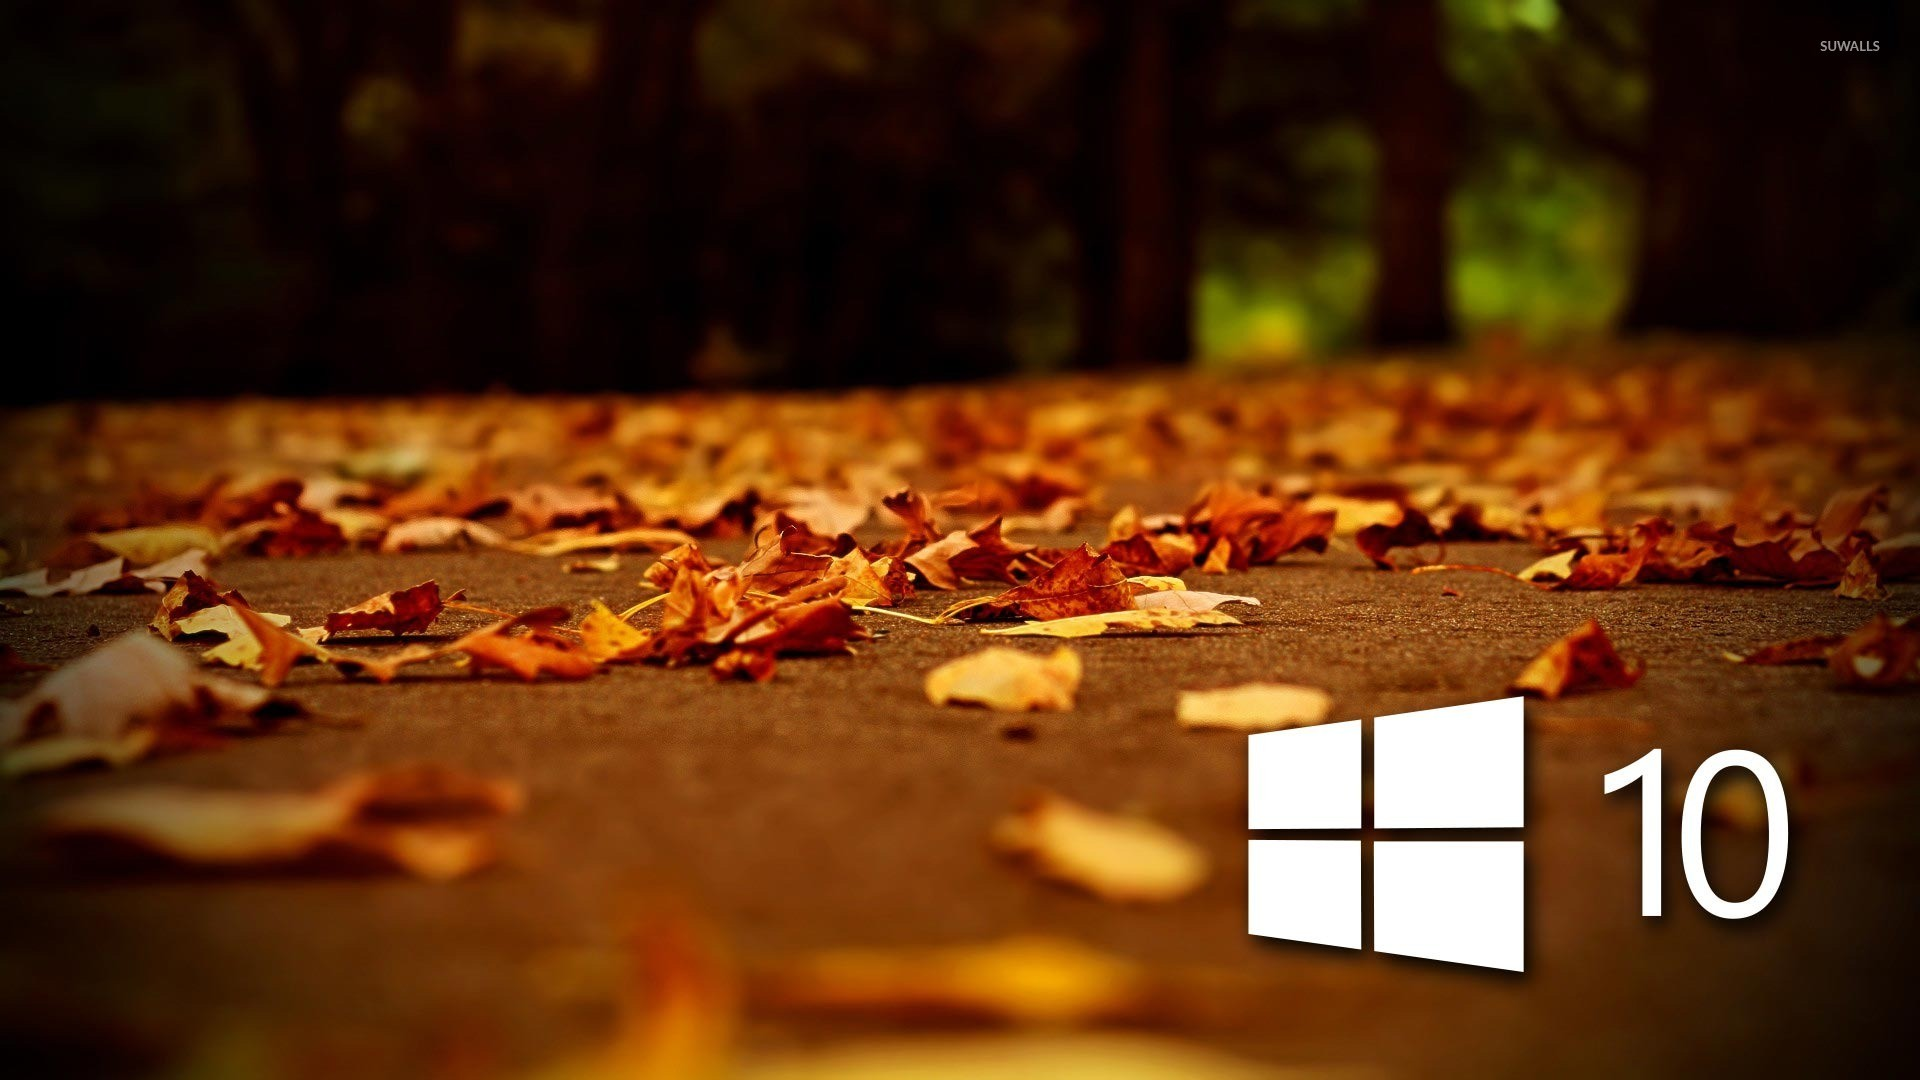 3847609-best-hd-wallpapers-for-windows-10-by-